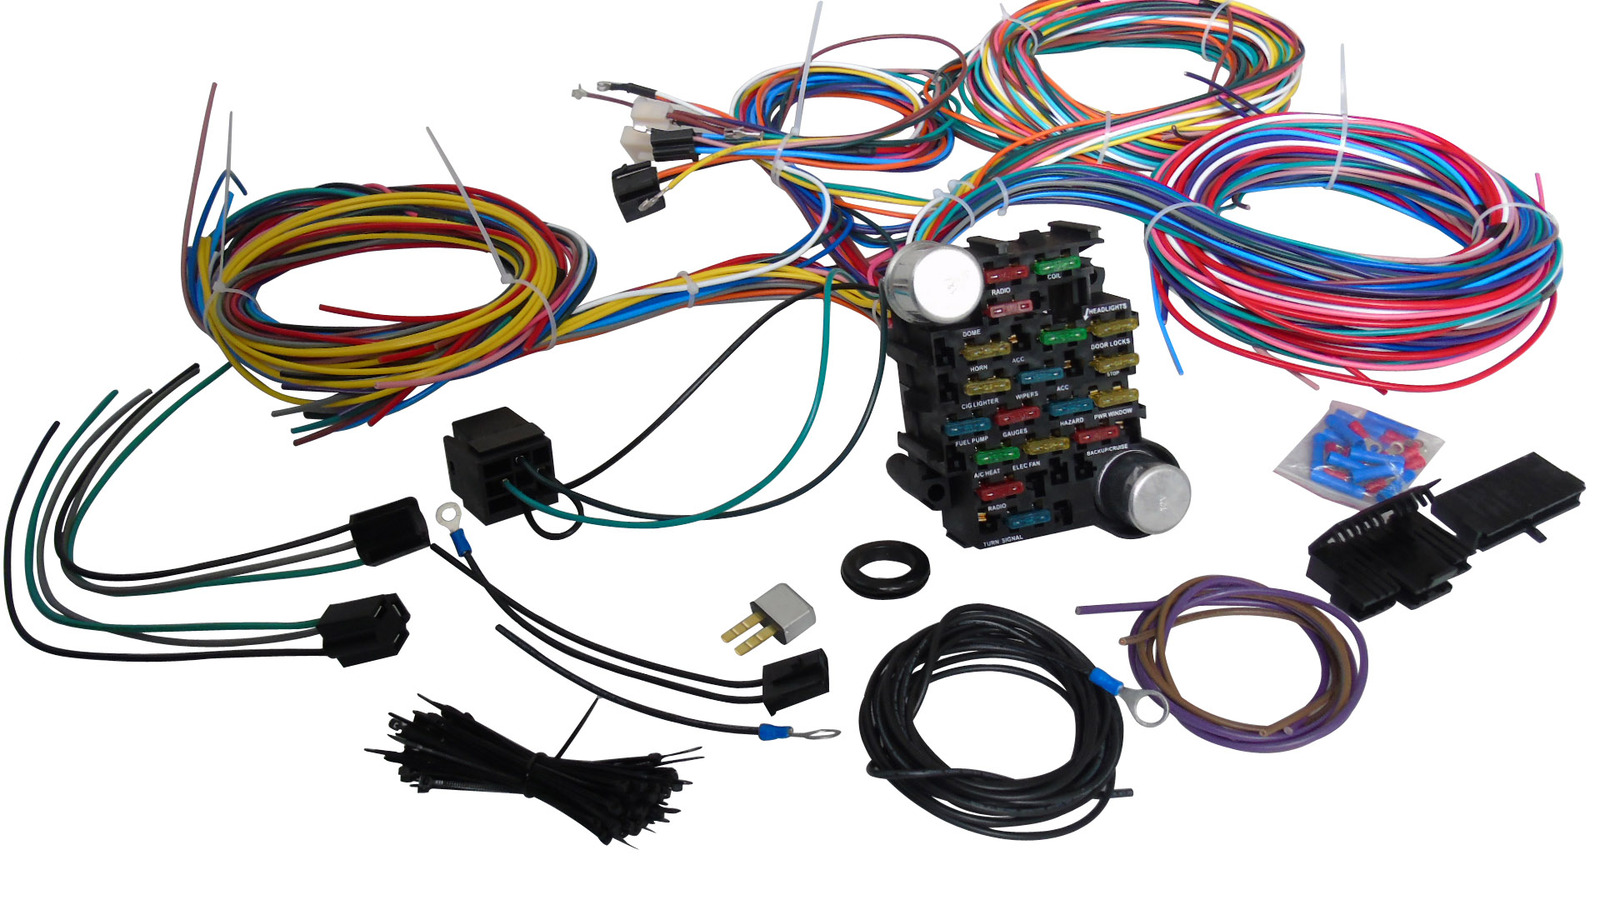 universal wiring harness library wiring diagrama team performance 21 standard circuit universal wiring harness cobra wiring harness 21 circuit harness kits